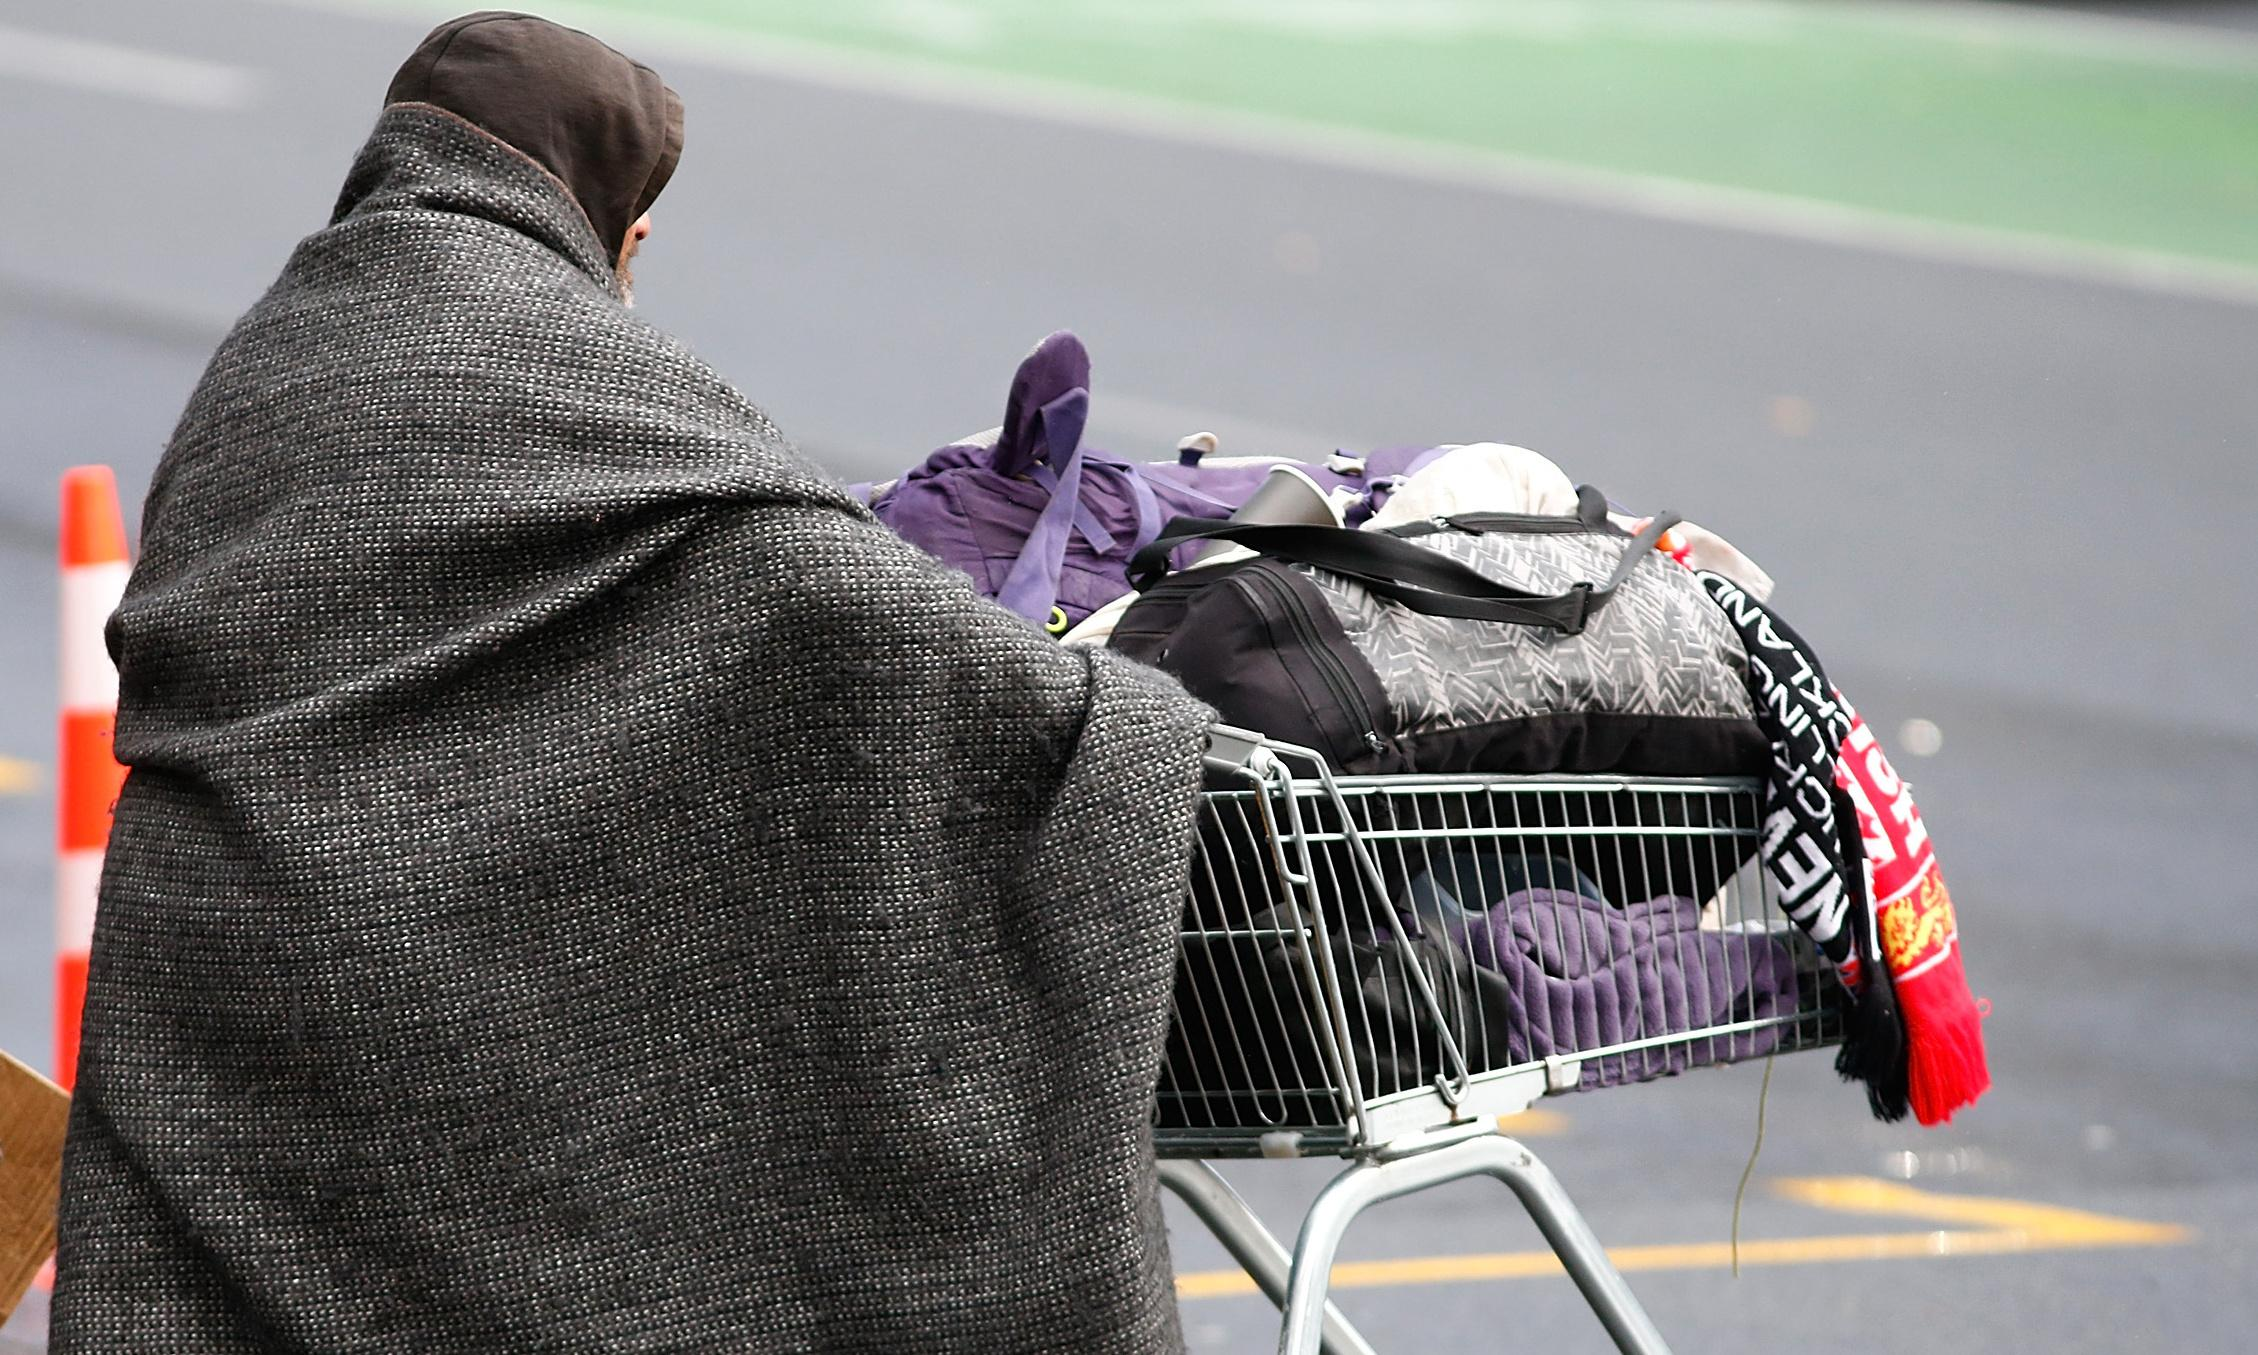 Poverty 'entrenched' in New Zealand despite progress on social issues - report